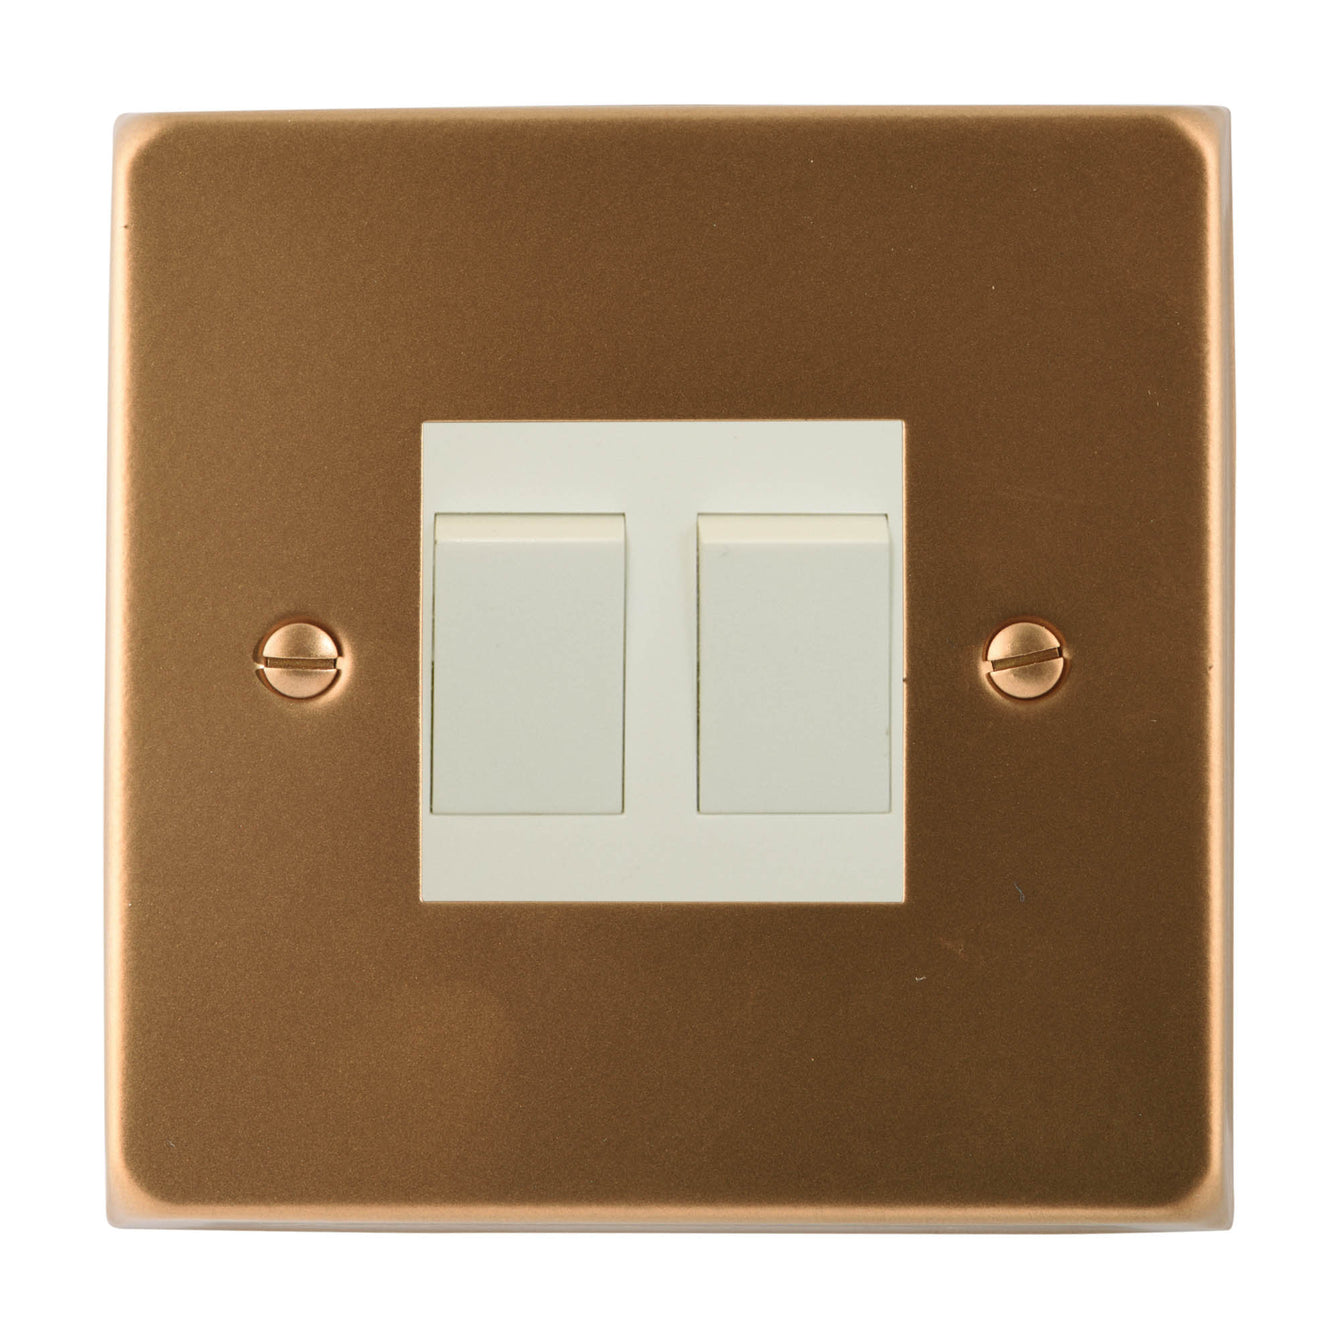 ElekTek Light Switch Conversion Cover Plate Double Victorian - Buy It Better Brilliant White